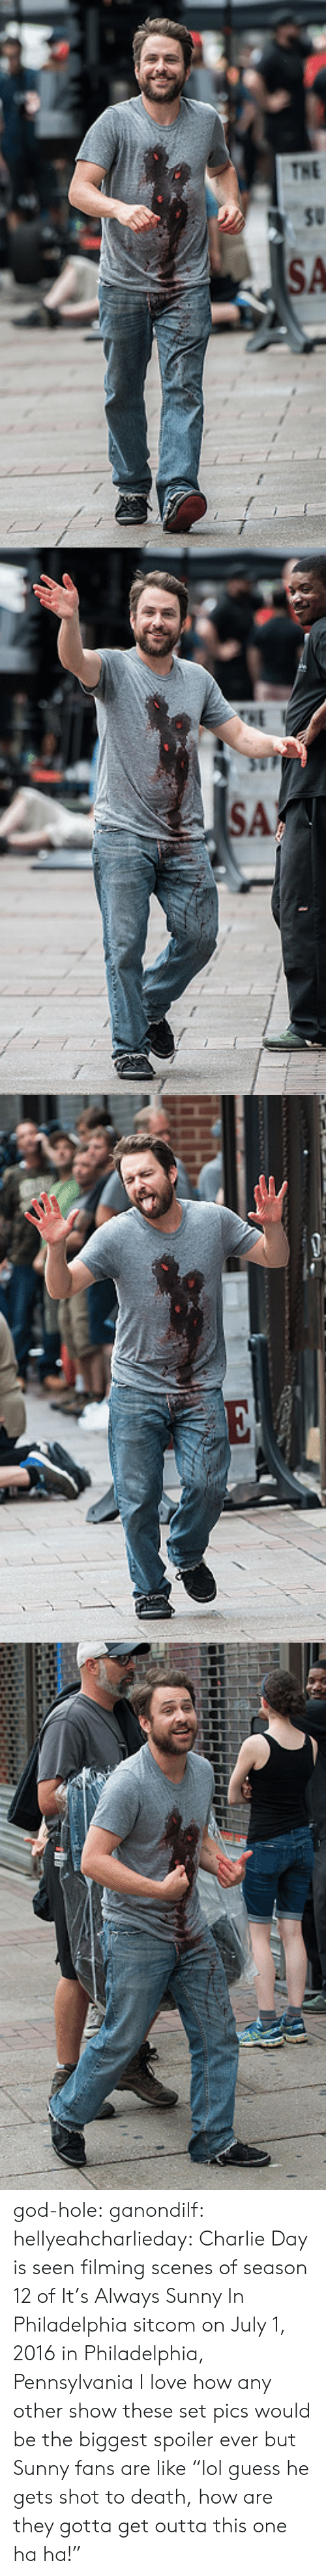 "Philadelphia: god-hole:  ganondilf:  hellyeahcharlieday:  Charlie Day is seen filming scenes of season 12 of It's Always Sunny In Philadelphia sitcom on July 1, 2016 in Philadelphia, Pennsylvania  I love how any other show these set pics would be the biggest spoiler ever but Sunny fans are like ""lol guess he gets shot to death, how are they gotta get outta this one ha ha!"""